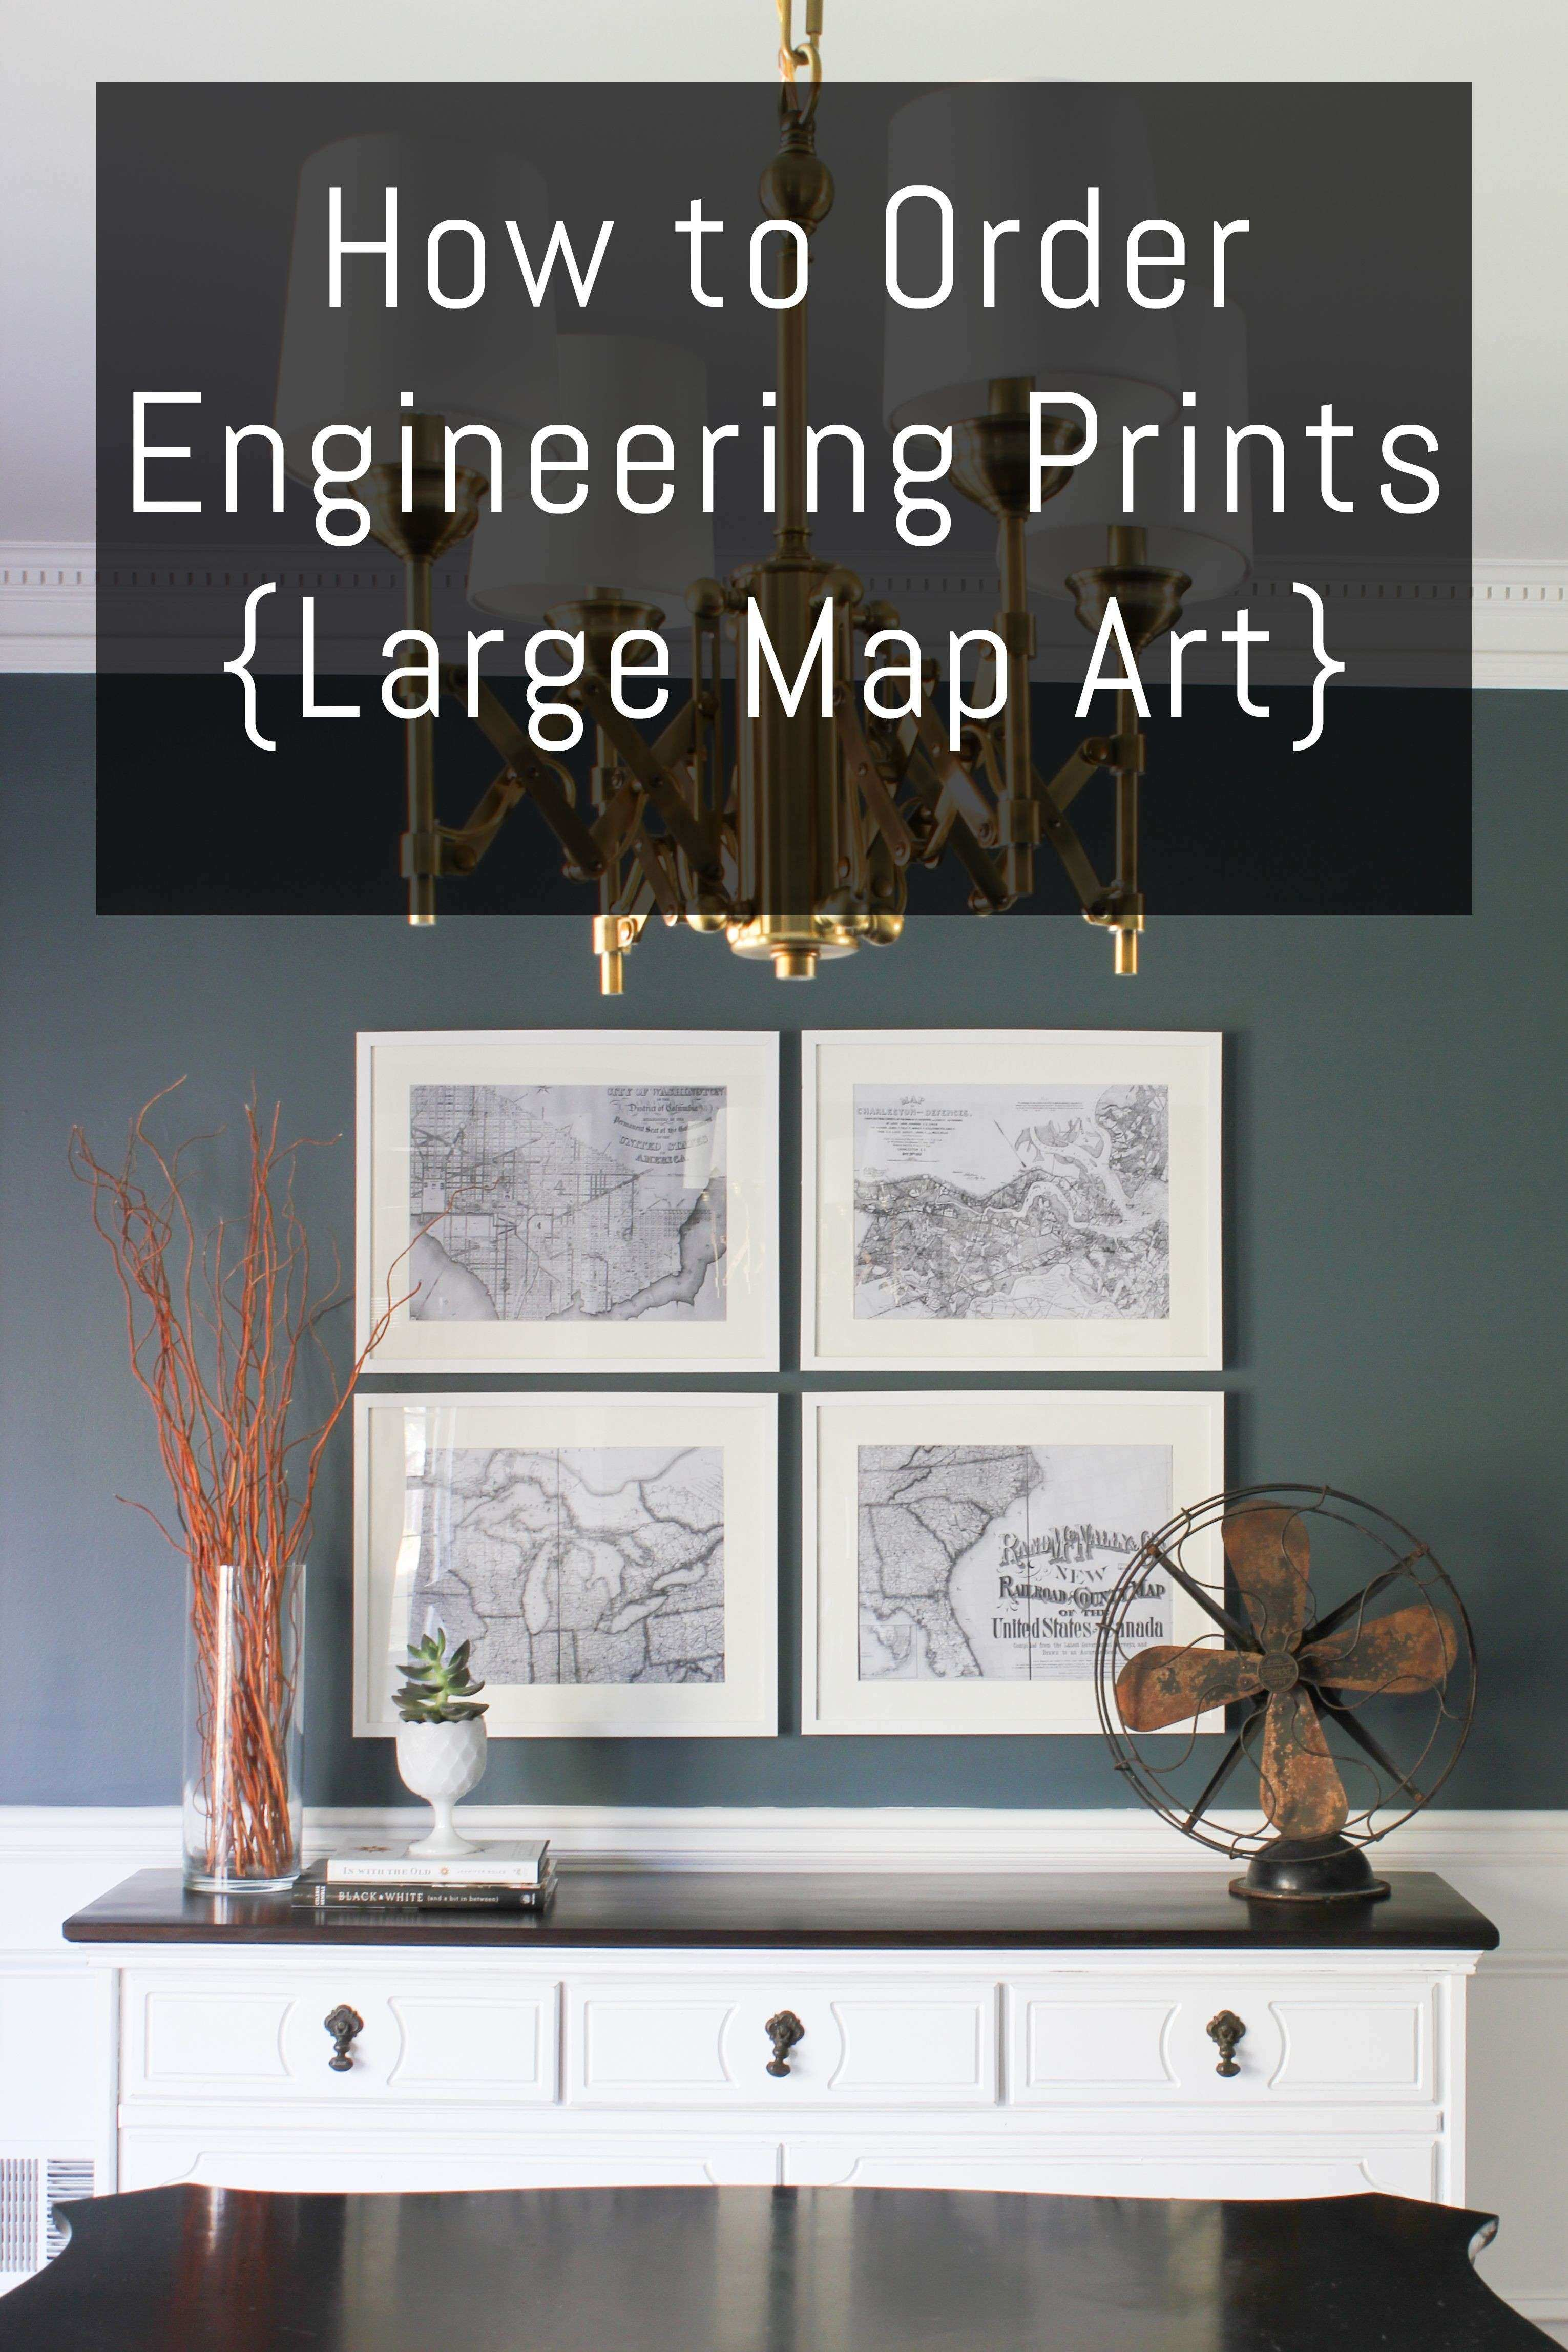 How to Order Engineering Prints Map Art